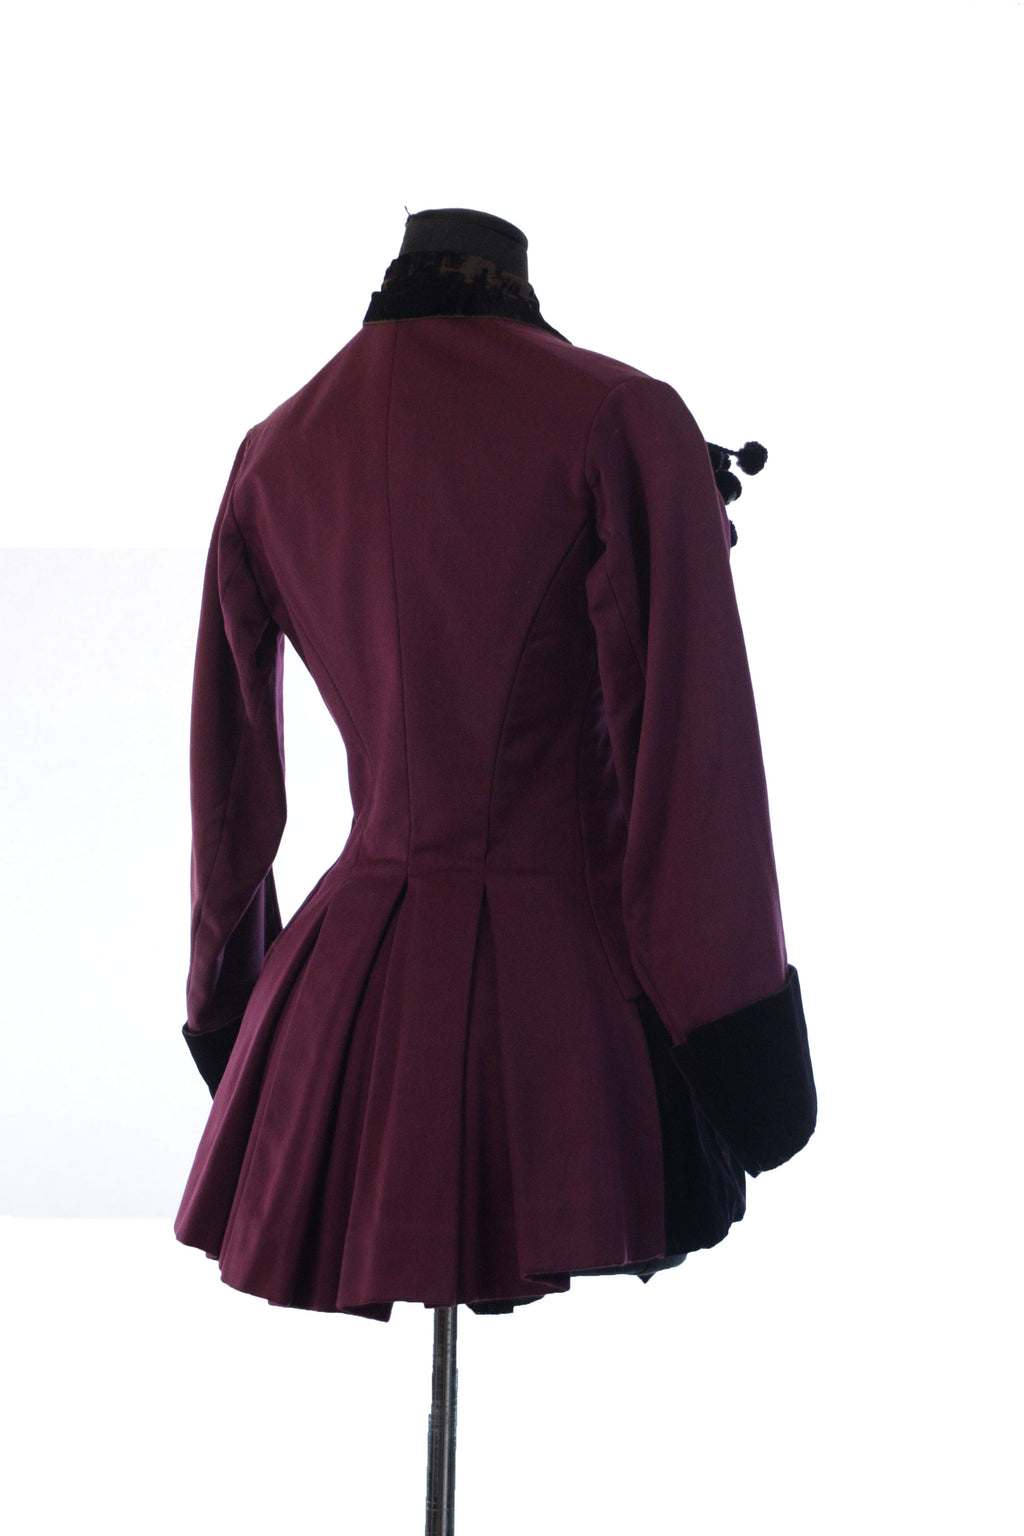 Exceptional Antique Victorian Riding Jacket in Plum Wool with Heavy Rope Trim